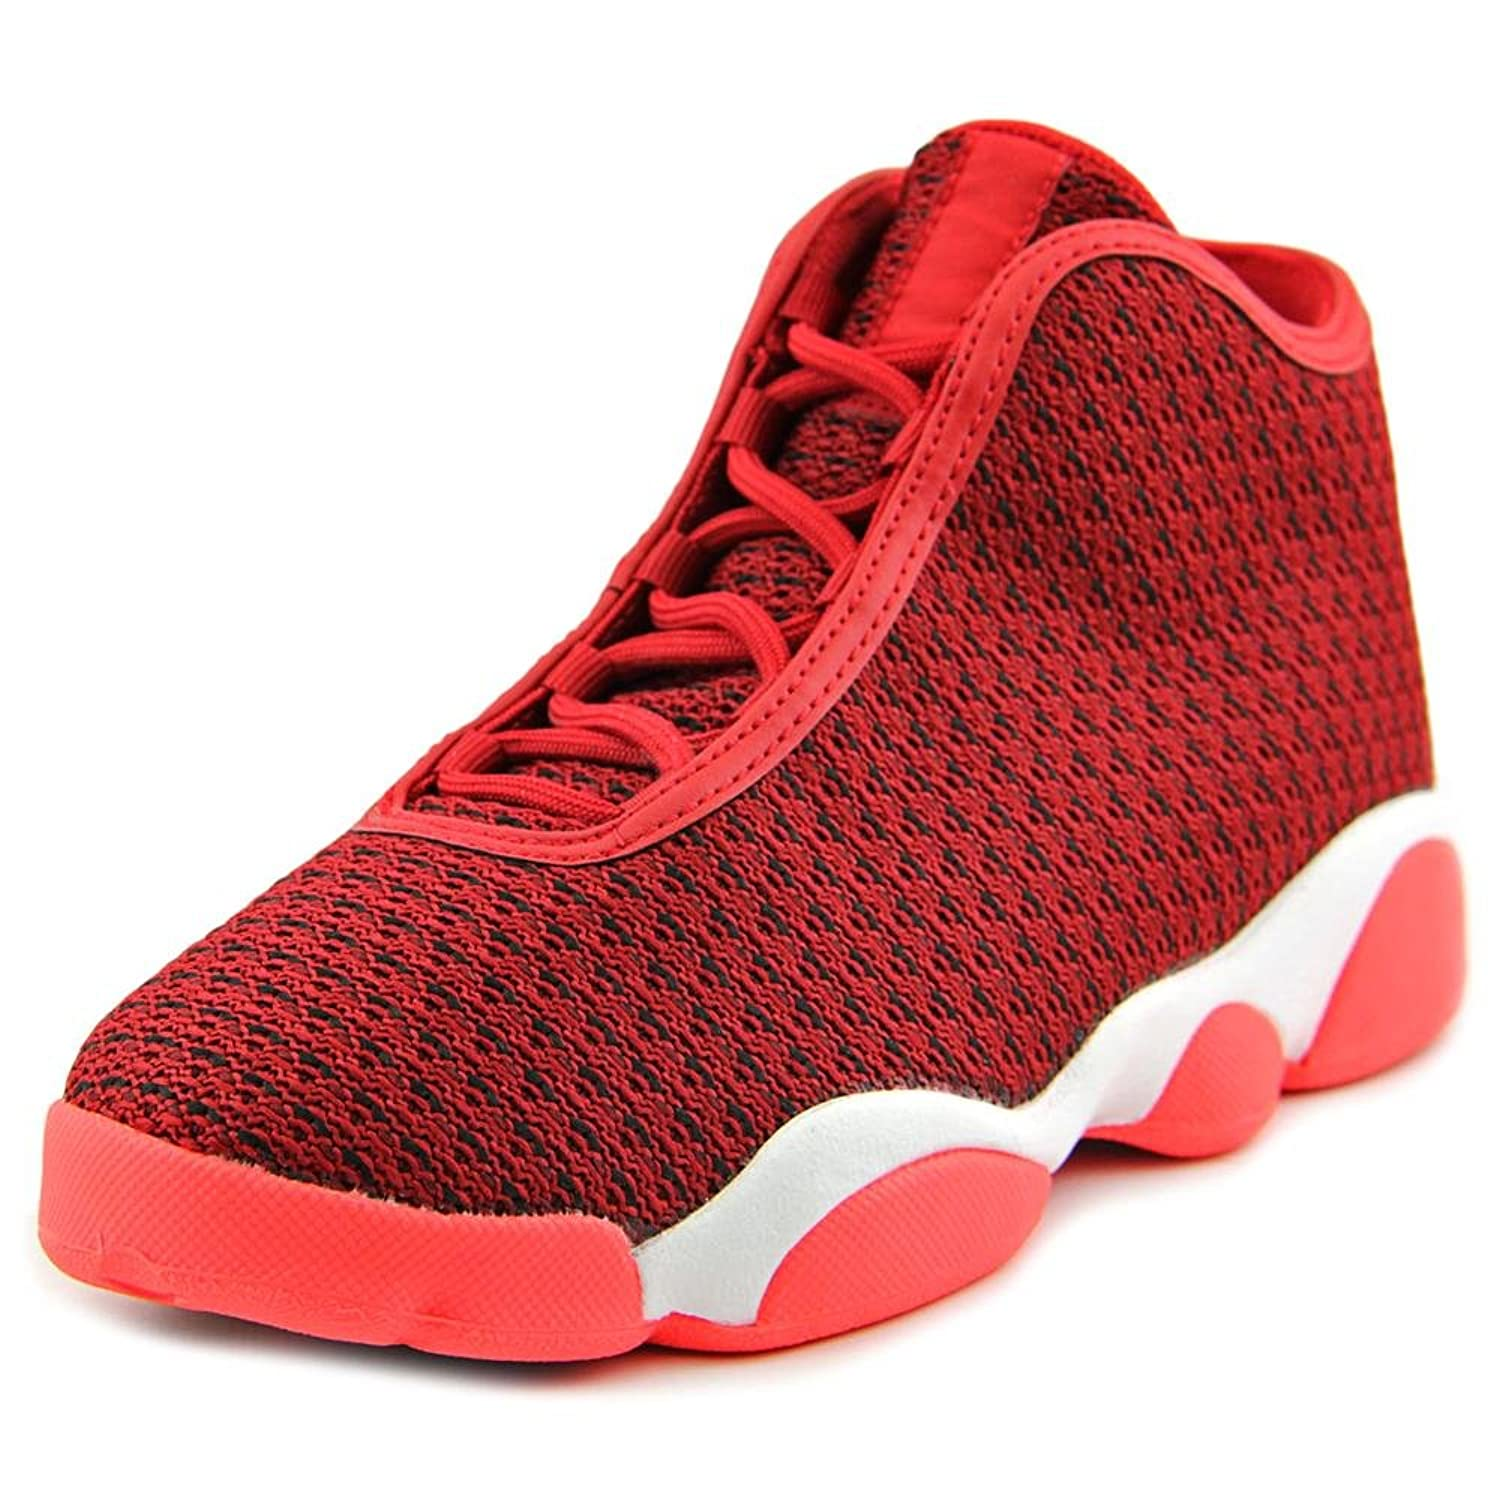 red jordan basketball shoes